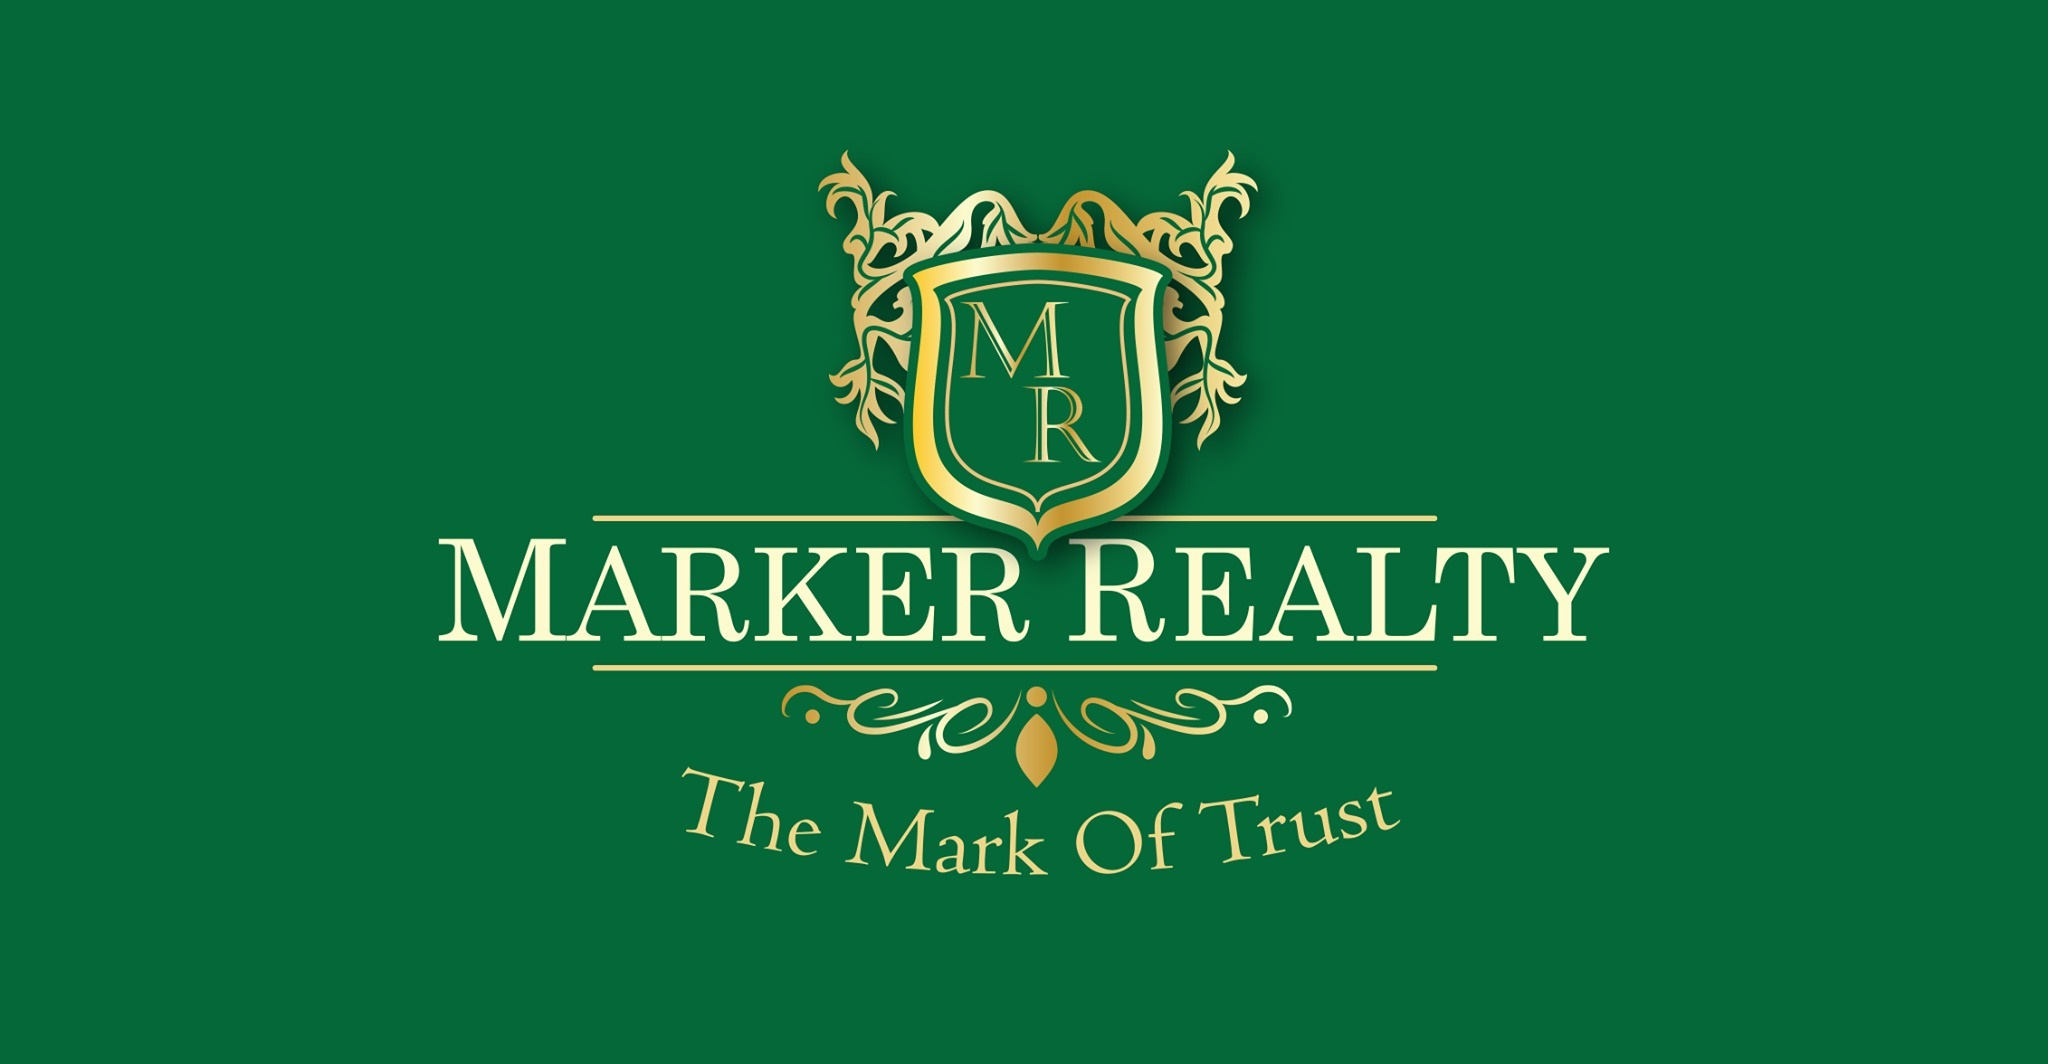 Marker Realty (@markerrealty) Cover Image